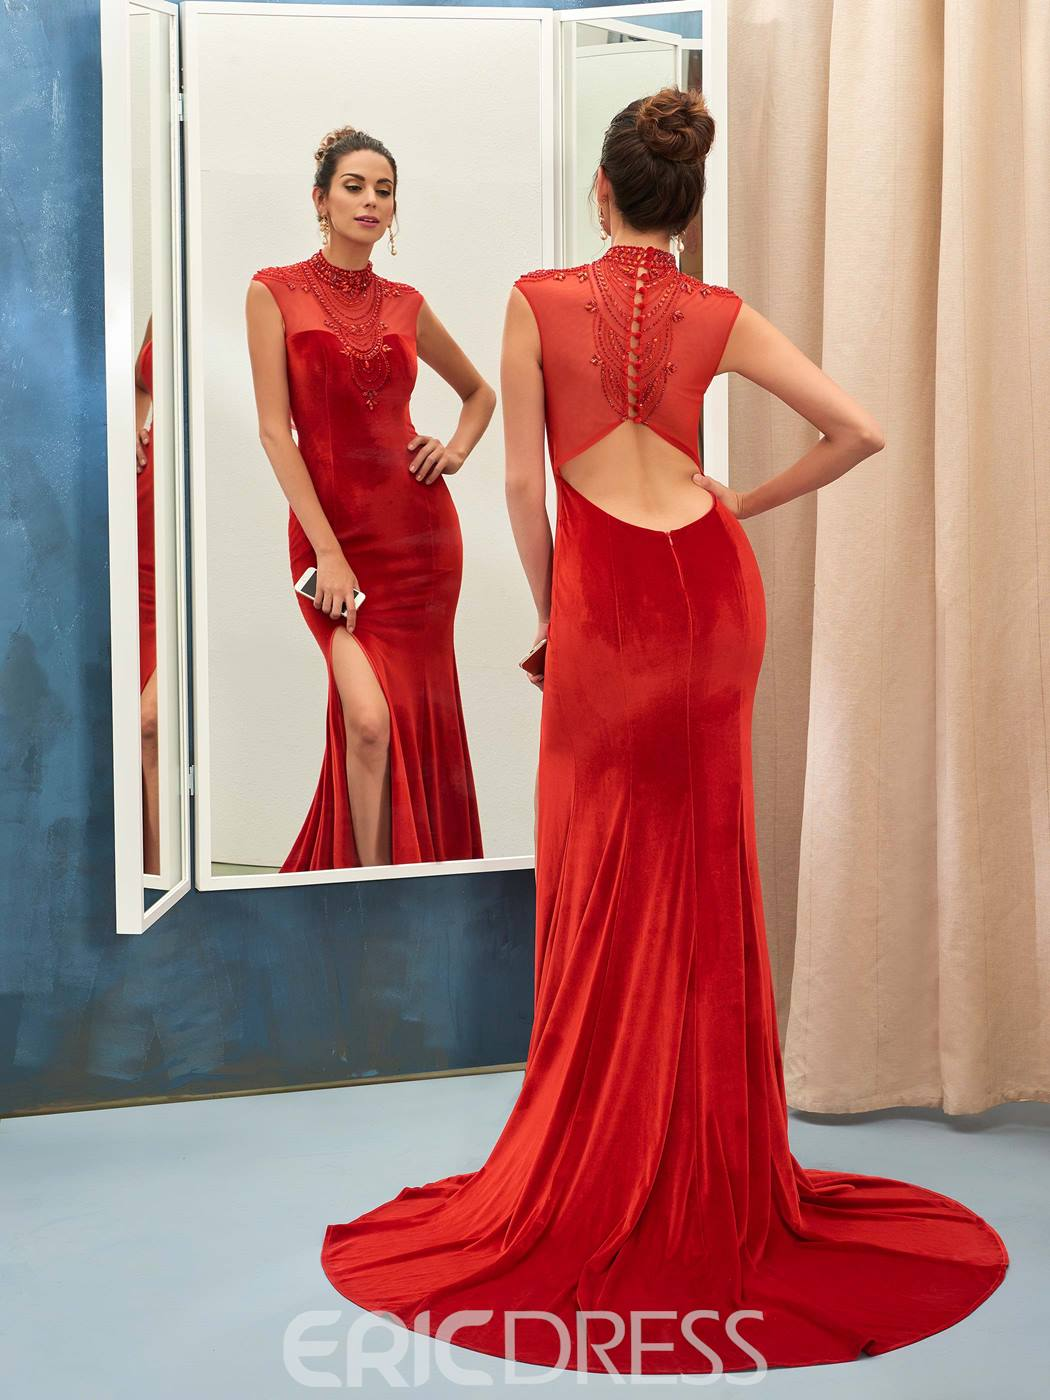 Ericdress Vintage High Neck Beaded Side Slit Mermaid Evening Dress